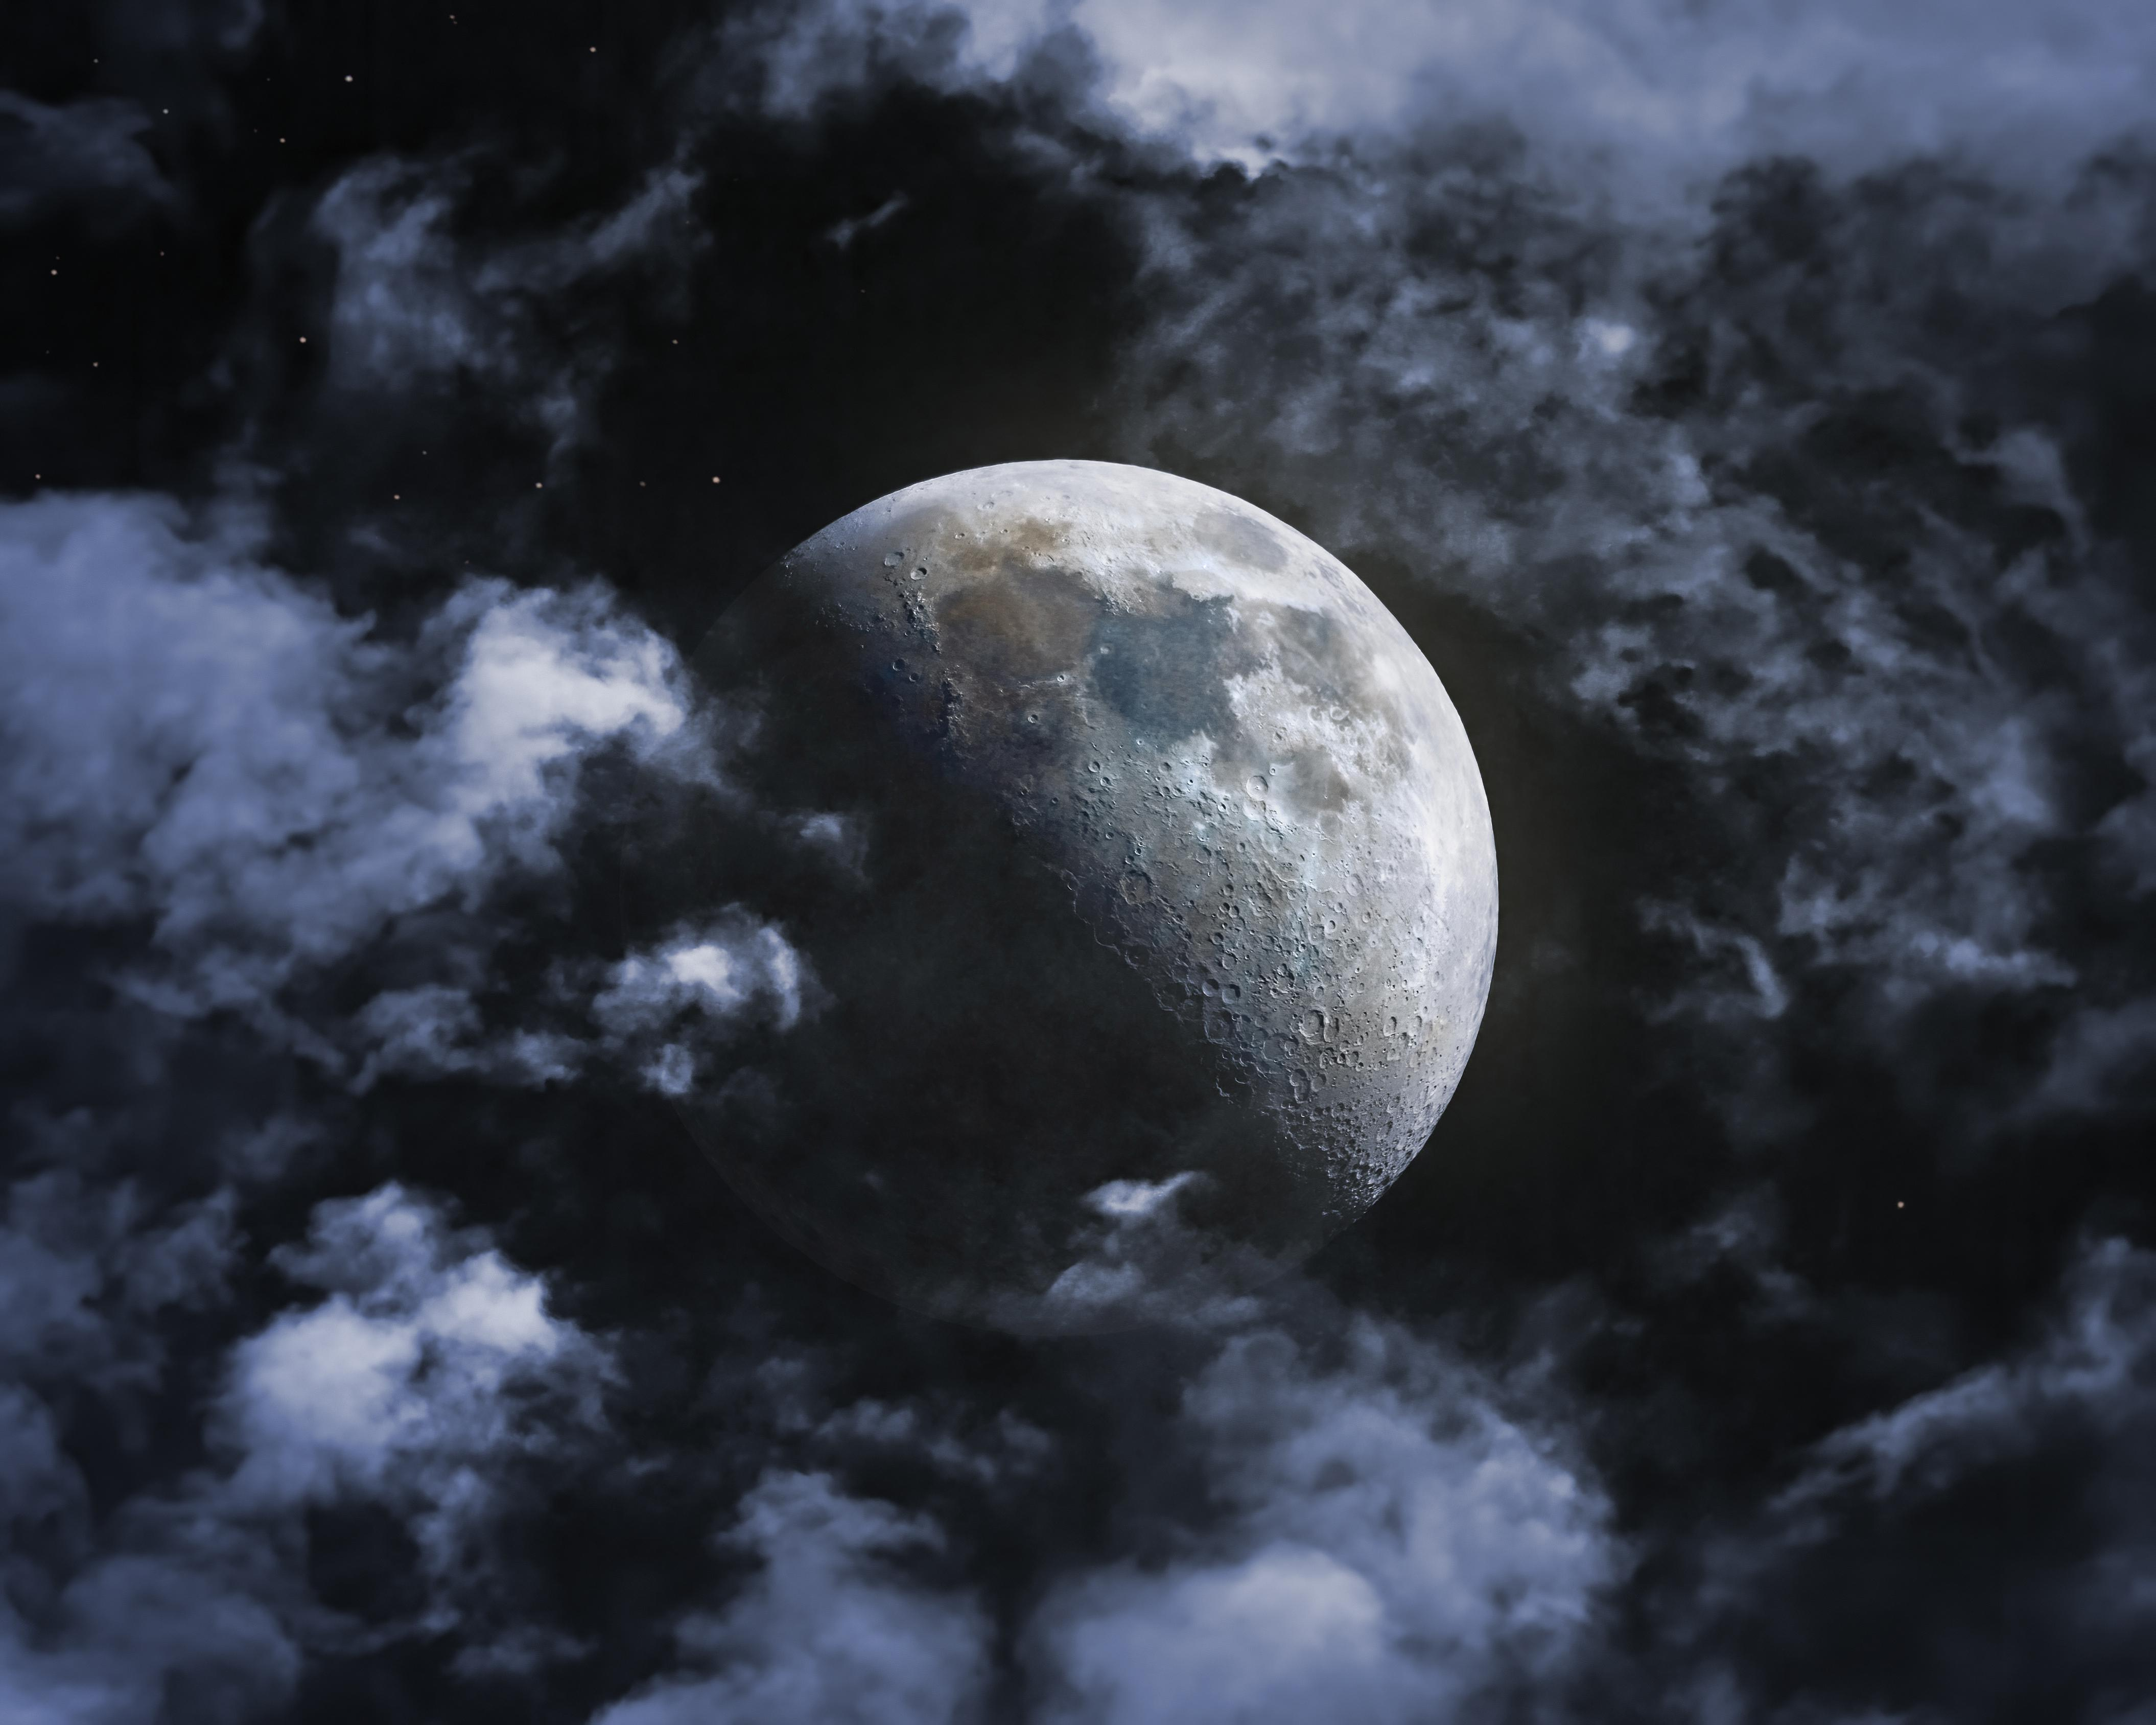 General 4220x3376 space Moon clouds telescope Composite